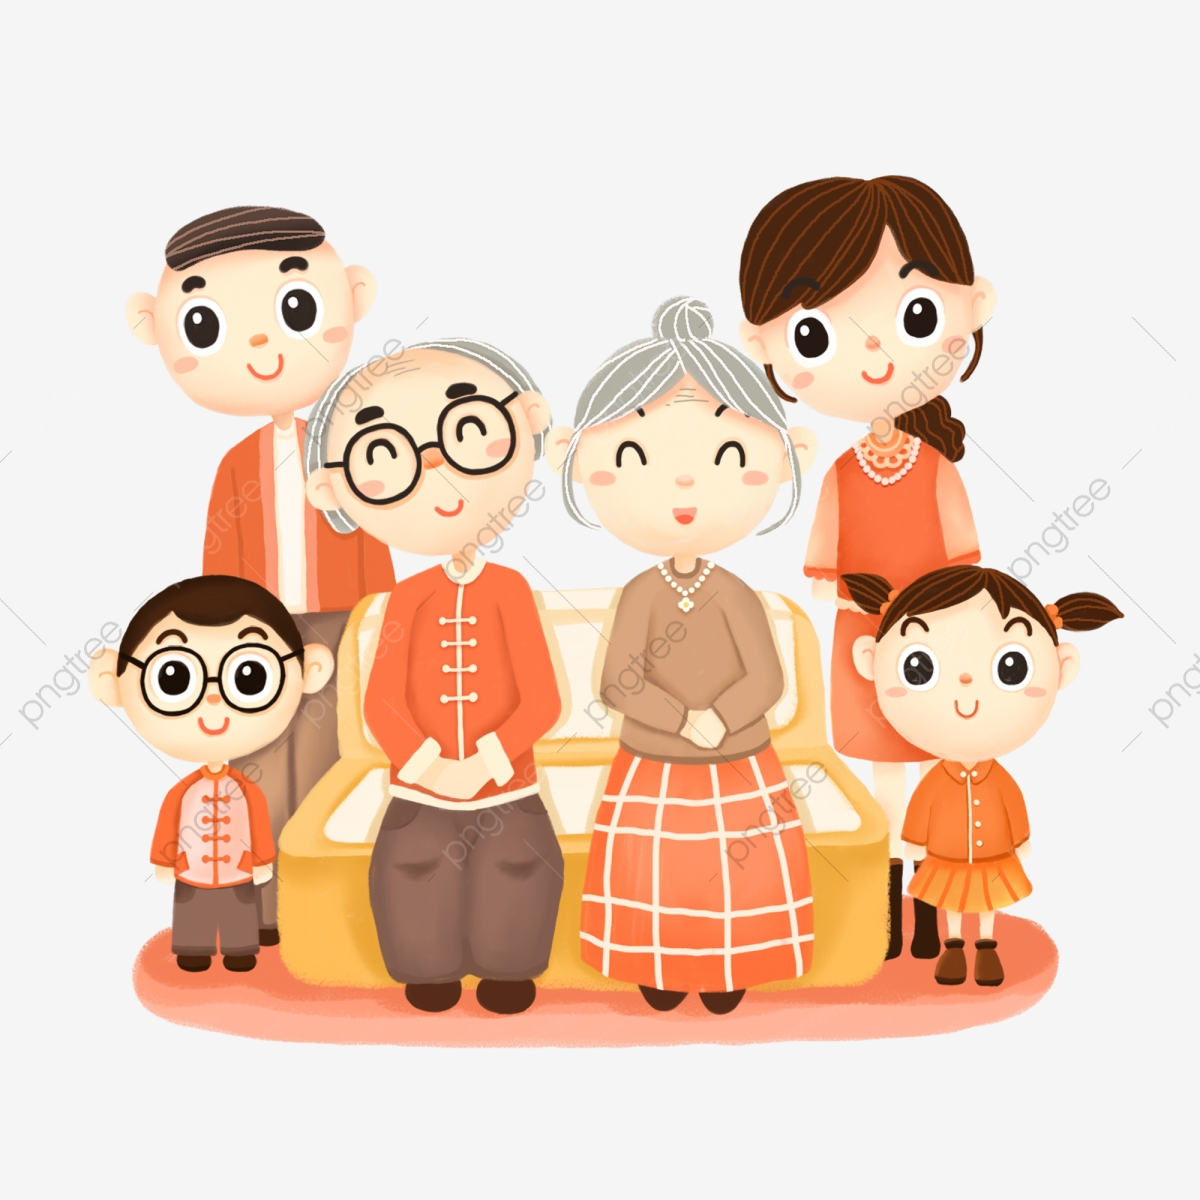 Family Portraits Png - Family Portrait Elderly Elders Parents Children Cartoon, Family ...